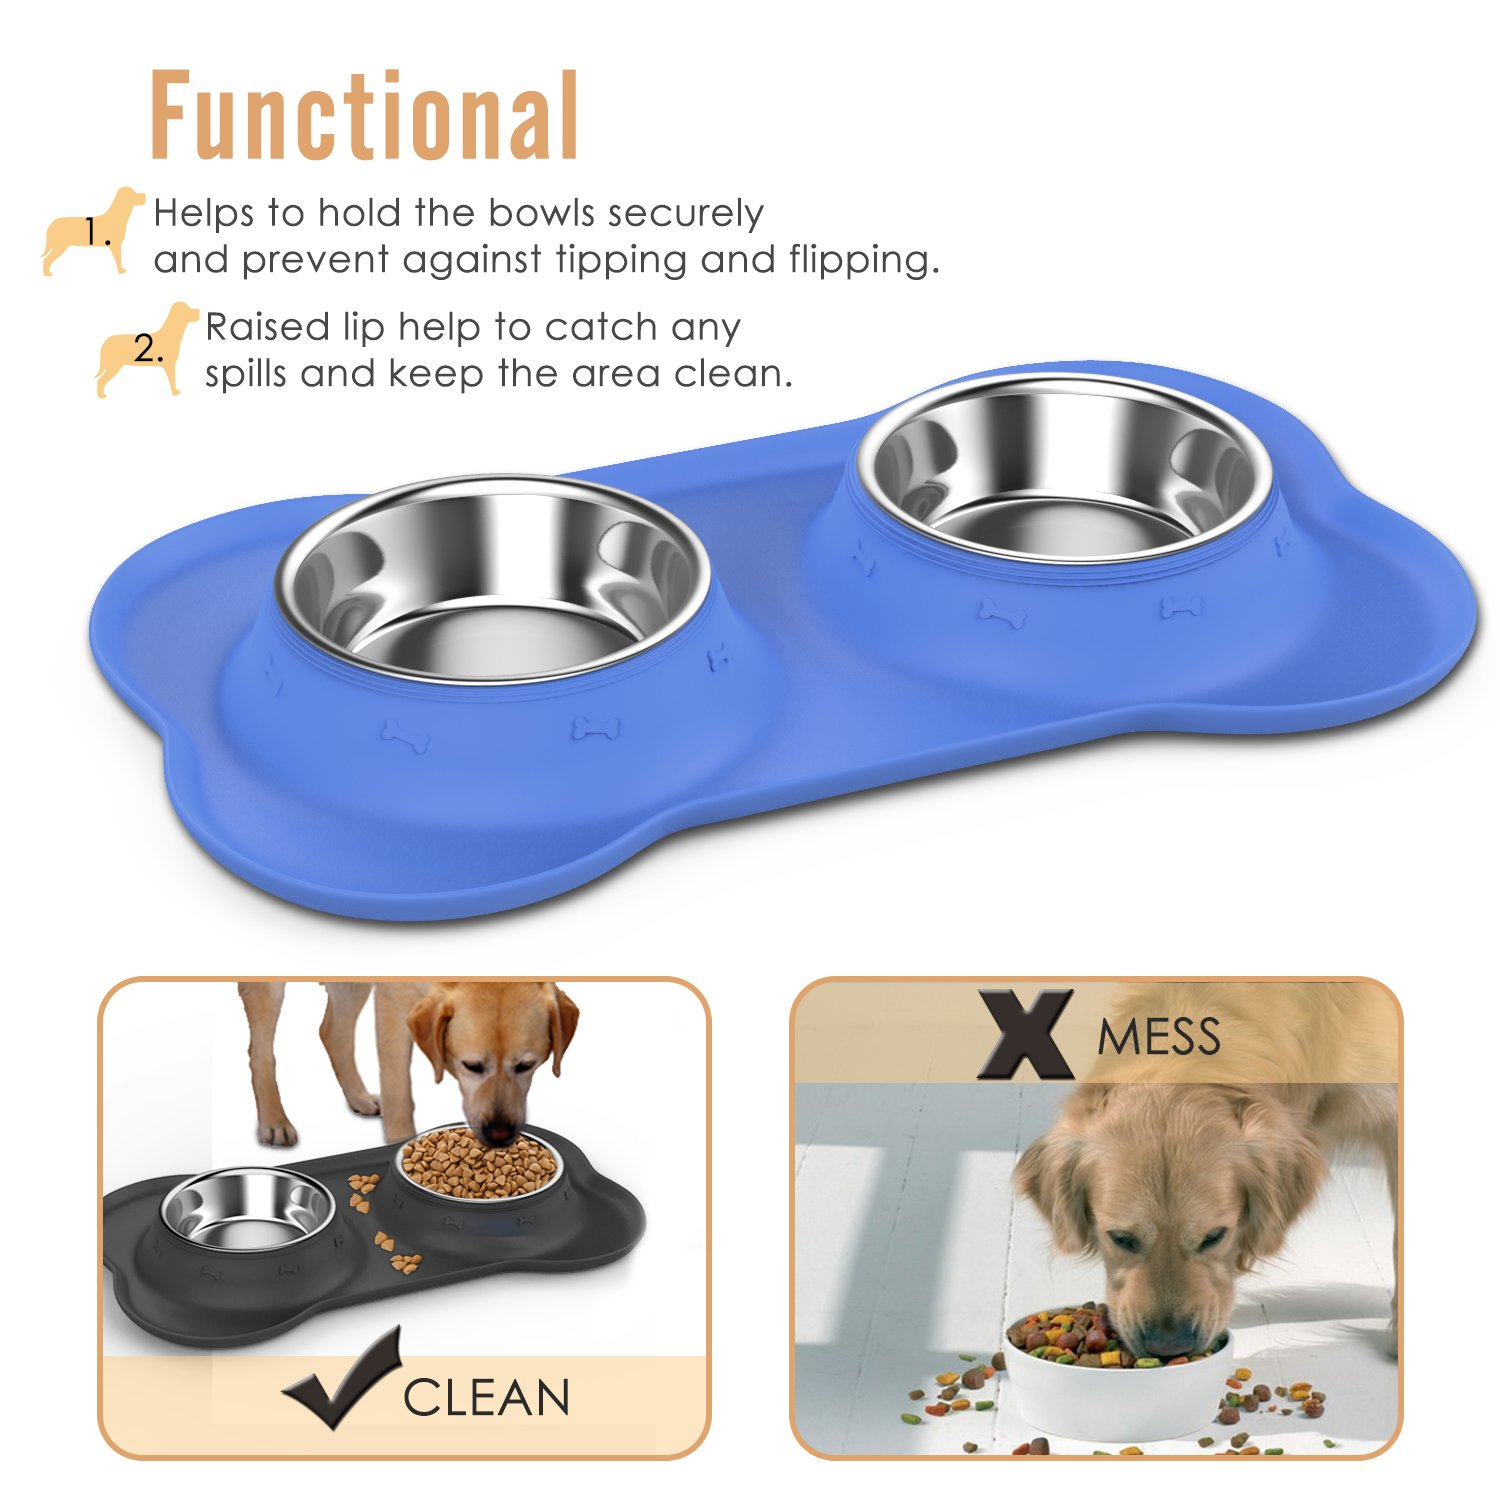 Pawaboo Pet Dog Cat Bowls, Premium Stainless Steel Pet Feeder with Food Grade Bone Shaped Rubber Base, 4.33 Inch Diameter Bowls for Pet Dog Cat Food or Water, Set of 2, Small Size, BLUE by PAWABOO (Image #4)